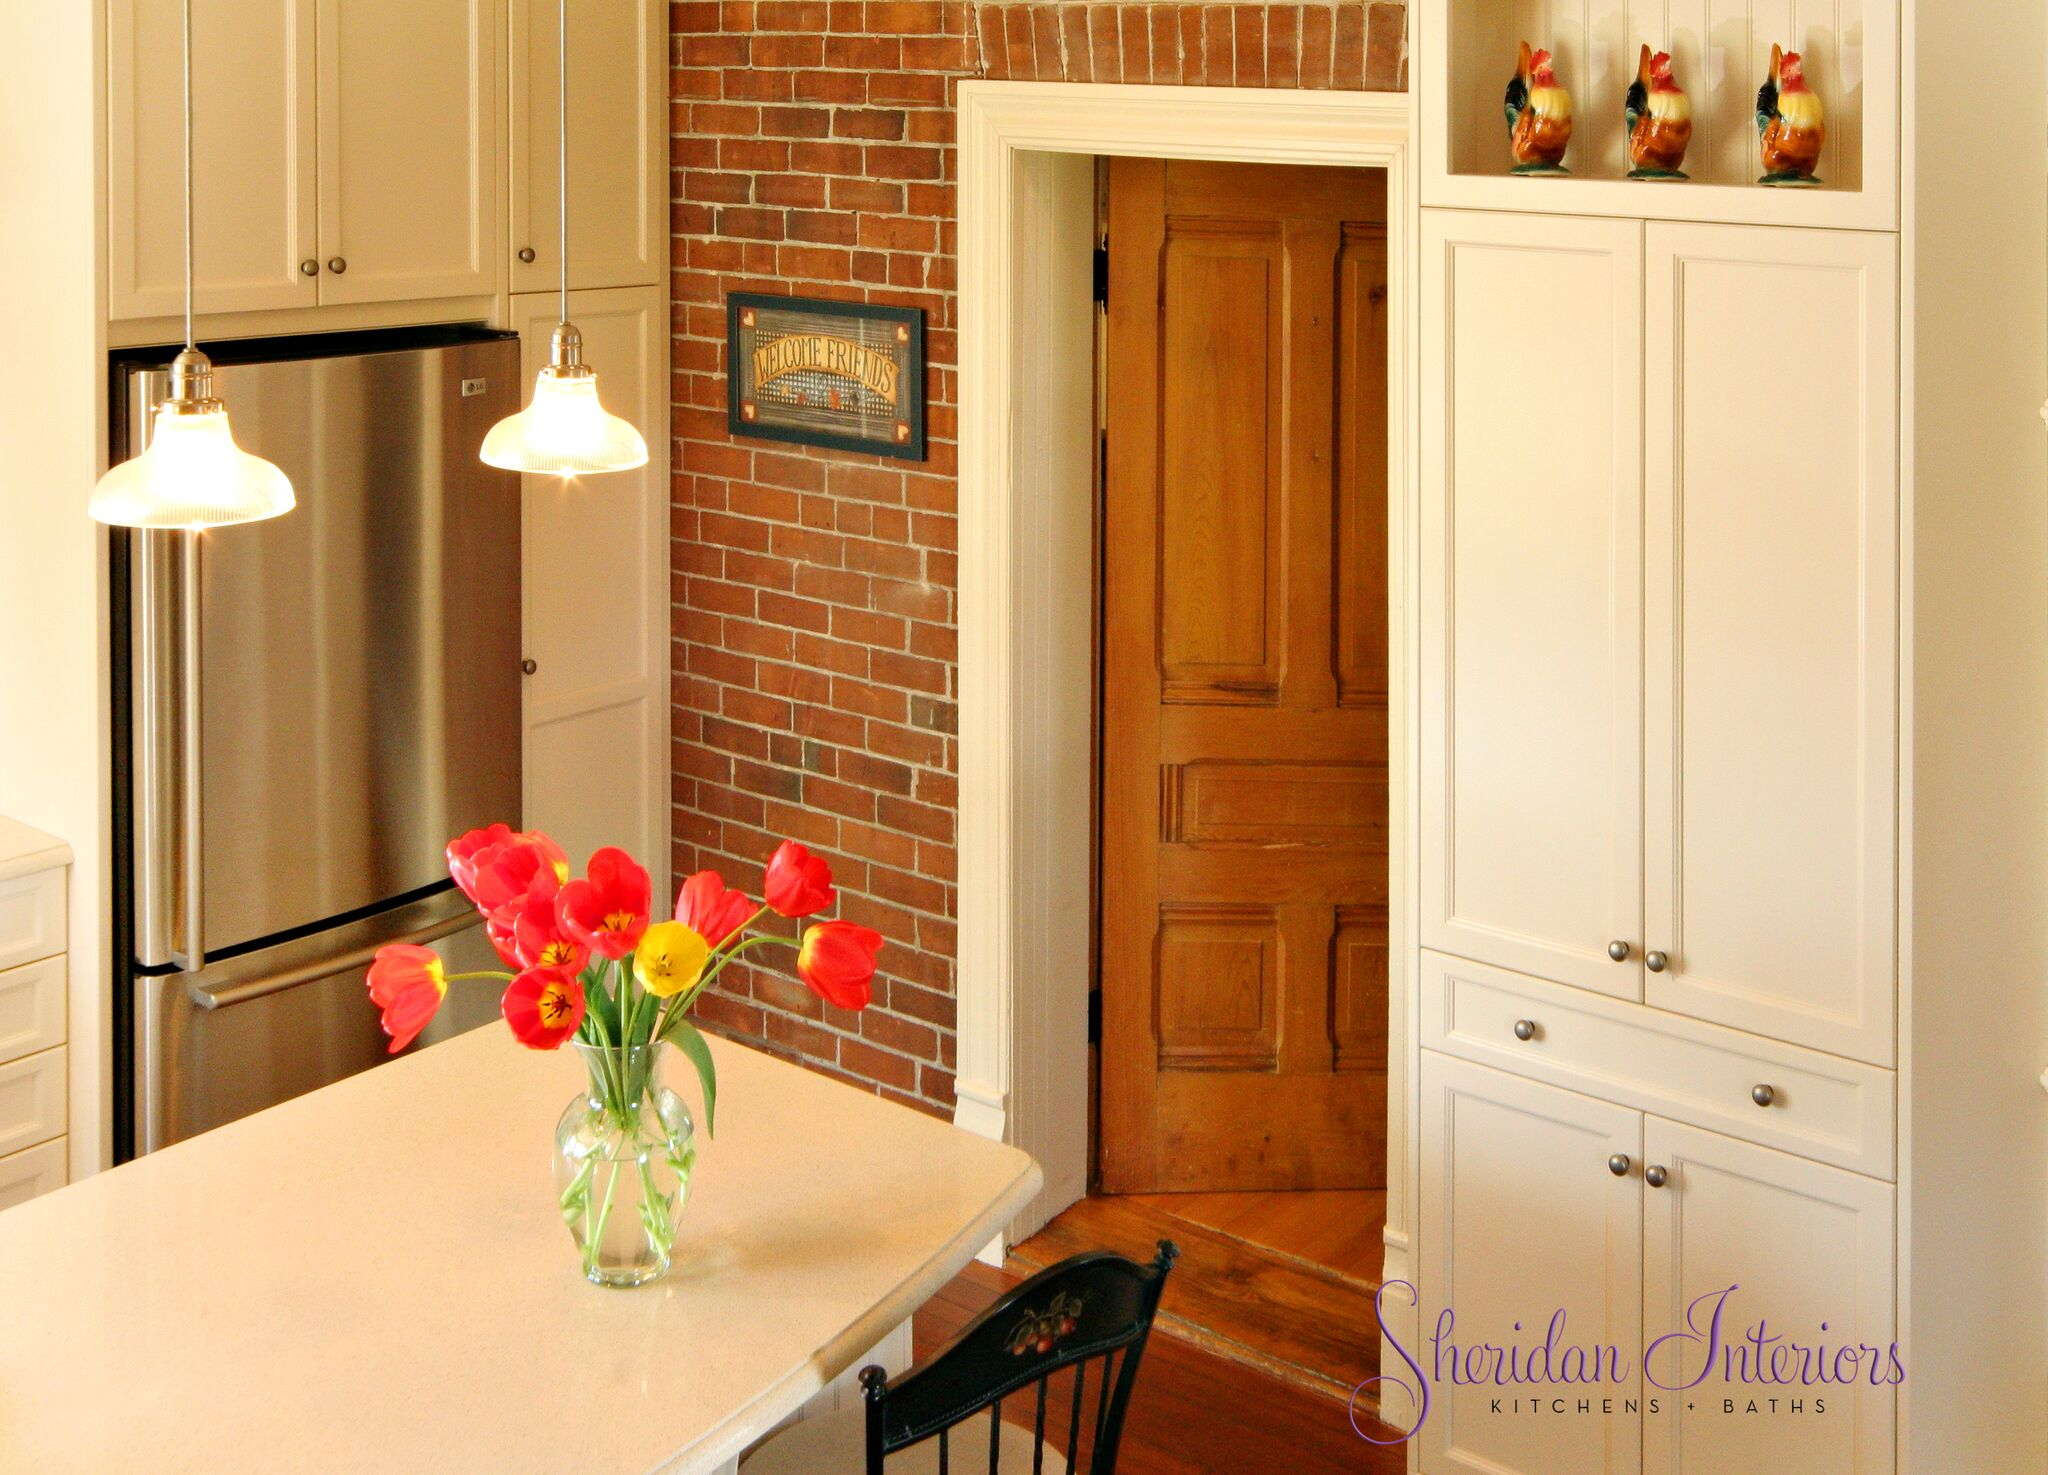 Country Kitchen with Island and Stools - Sheridan Interiors